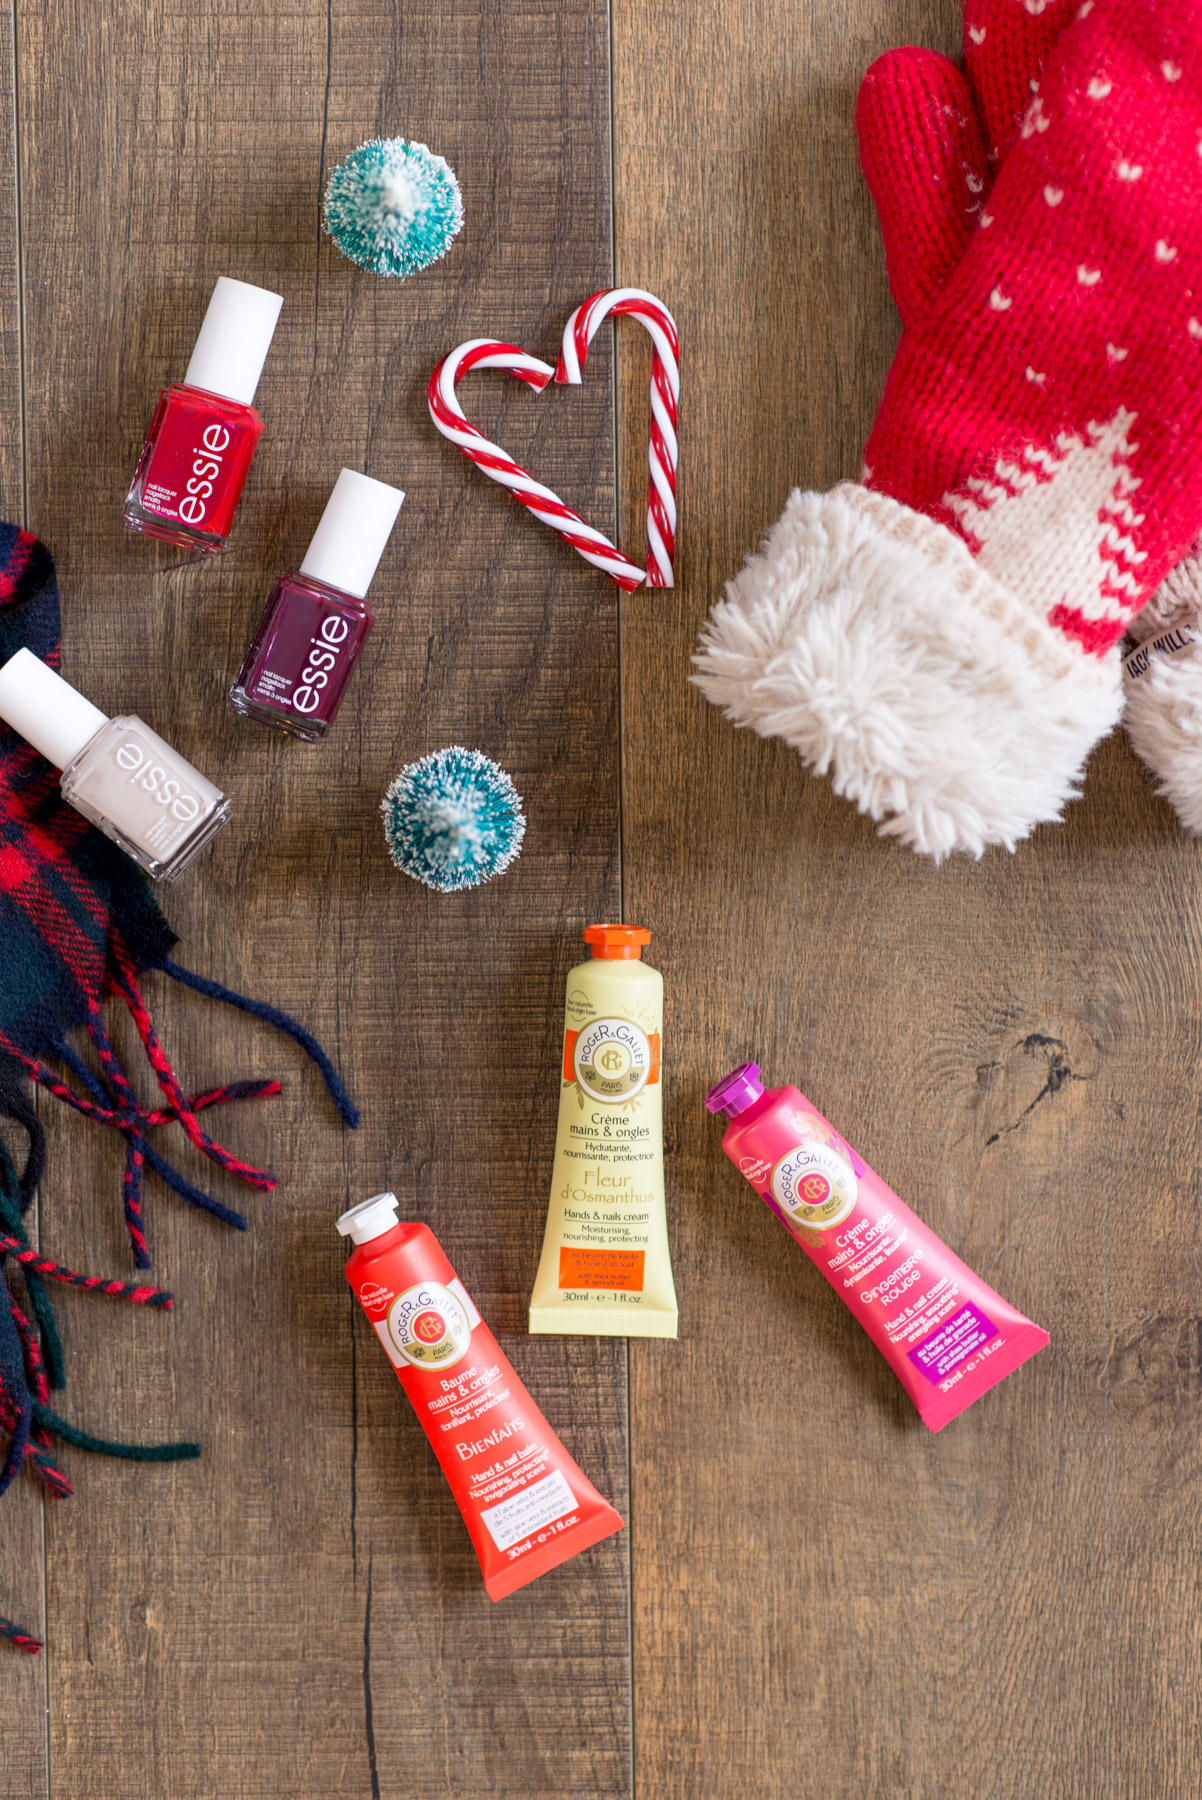 Blog-Mode-And-The-City-Beauté-Prendre-Soin-Mains-Hiver